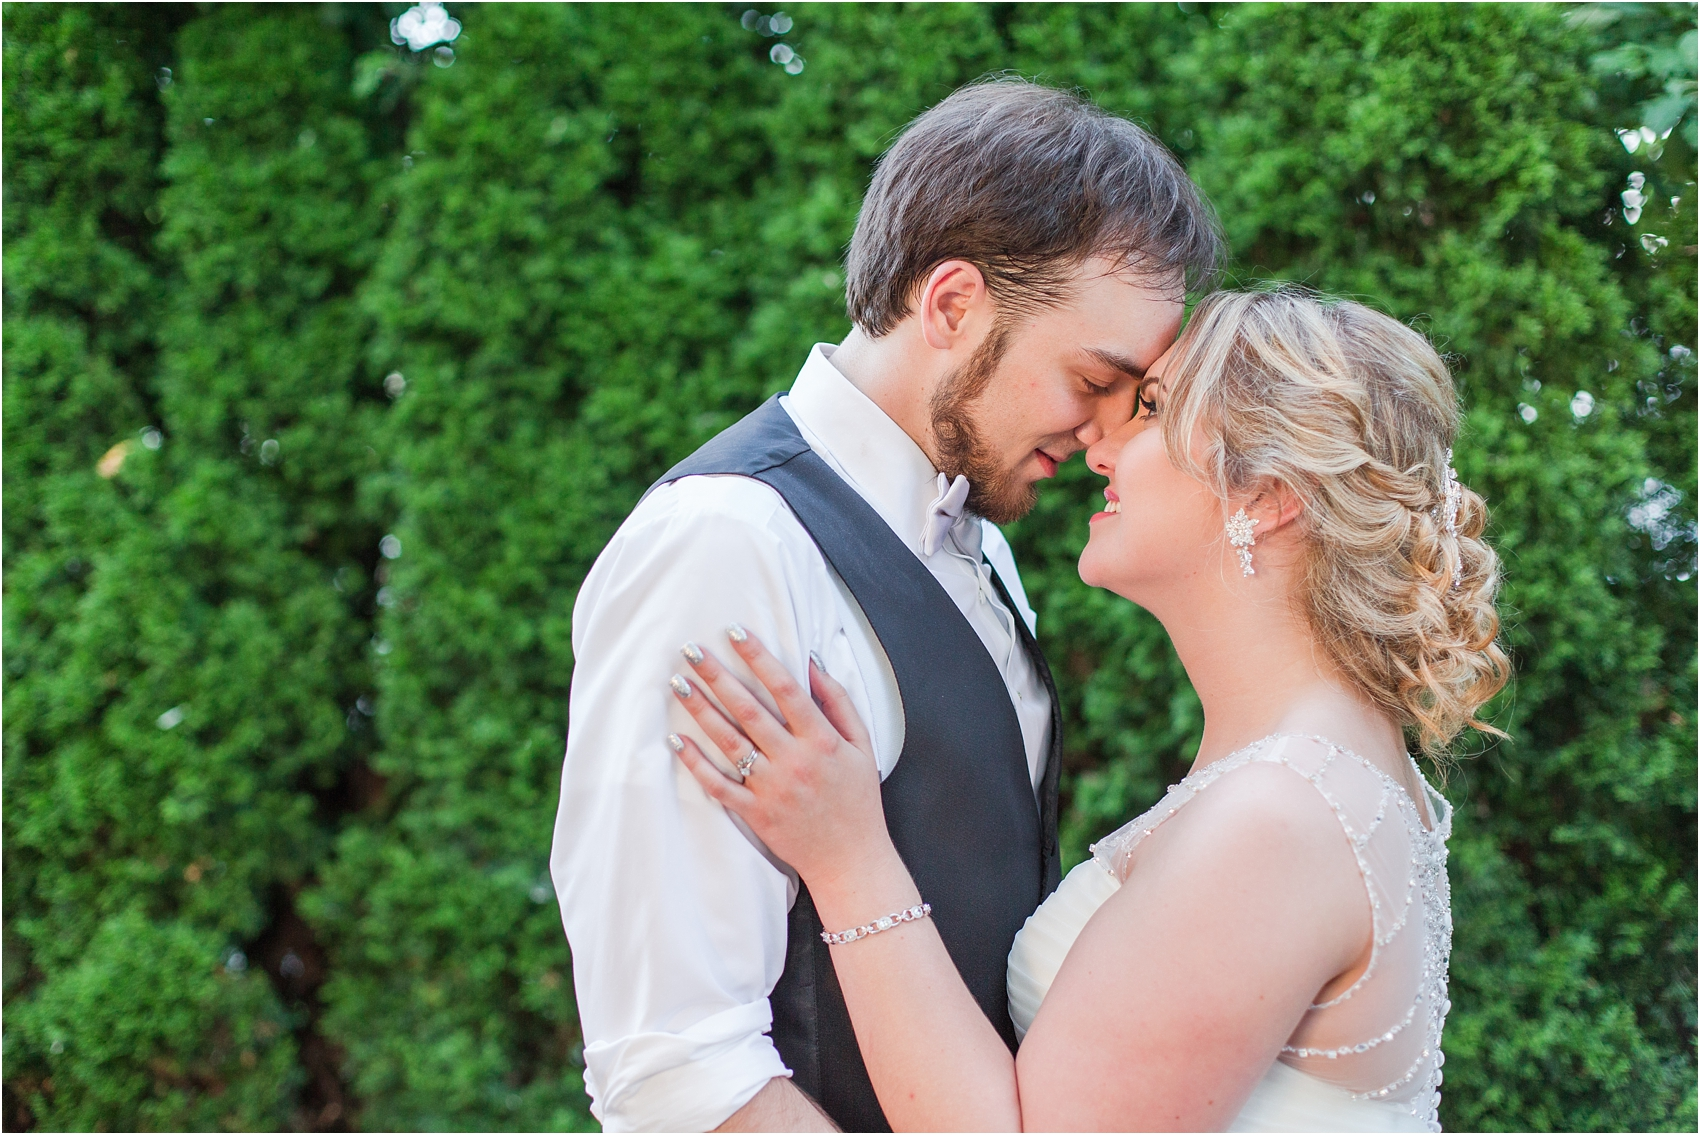 lord-of-the-rings-inspired-wedding-photos-at-crystal-gardens-in-howell-mi-by-courtney-carolyn-photography_0094.jpg